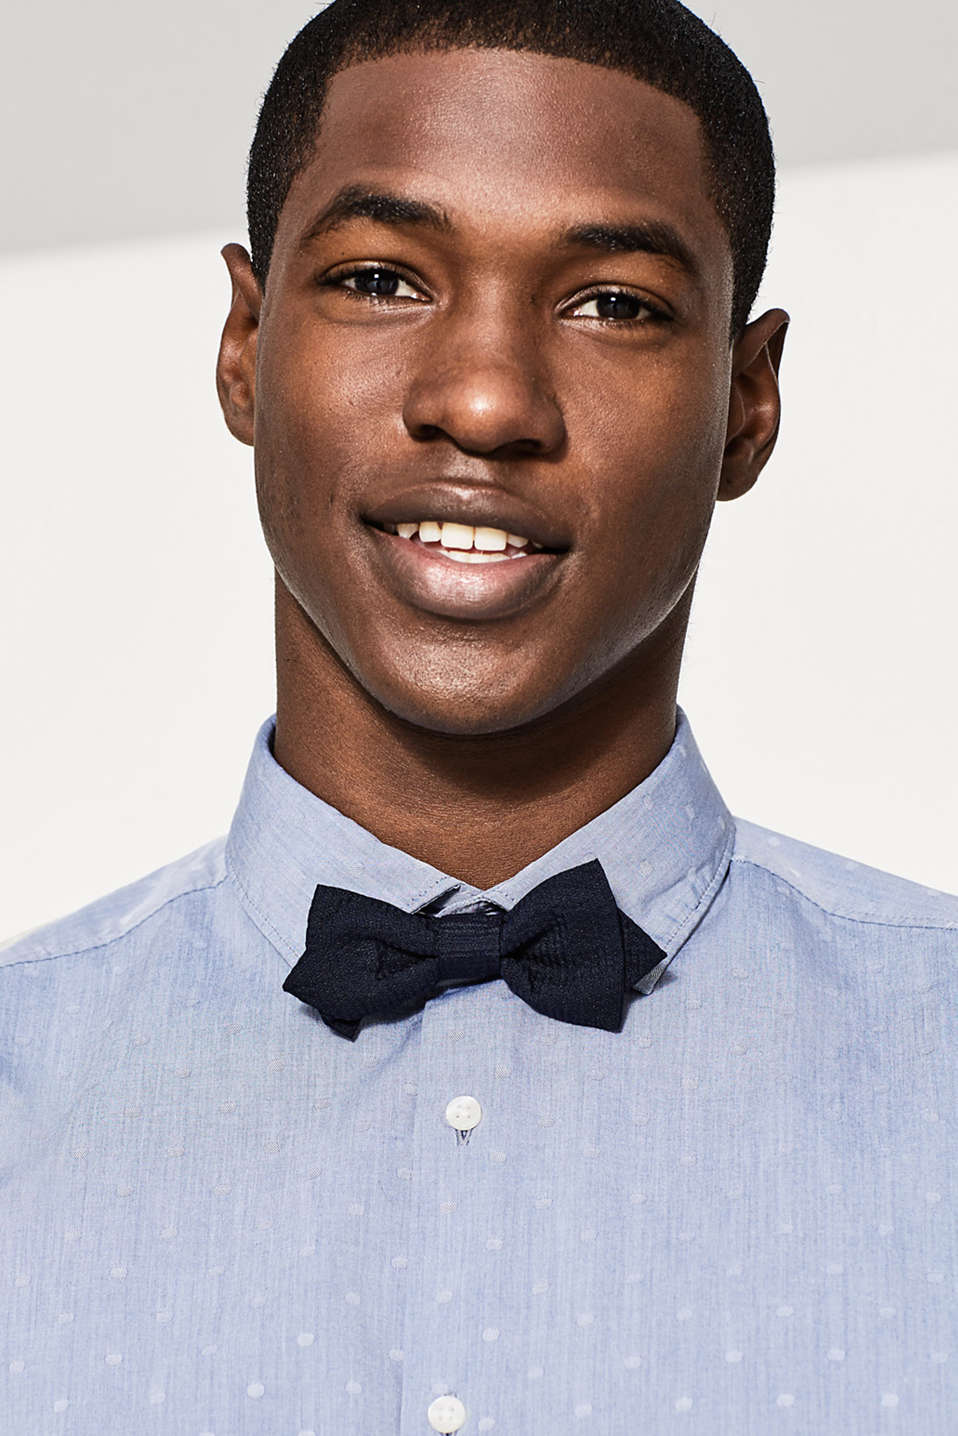 Already fastened for you: Bow tie with a coarse texture